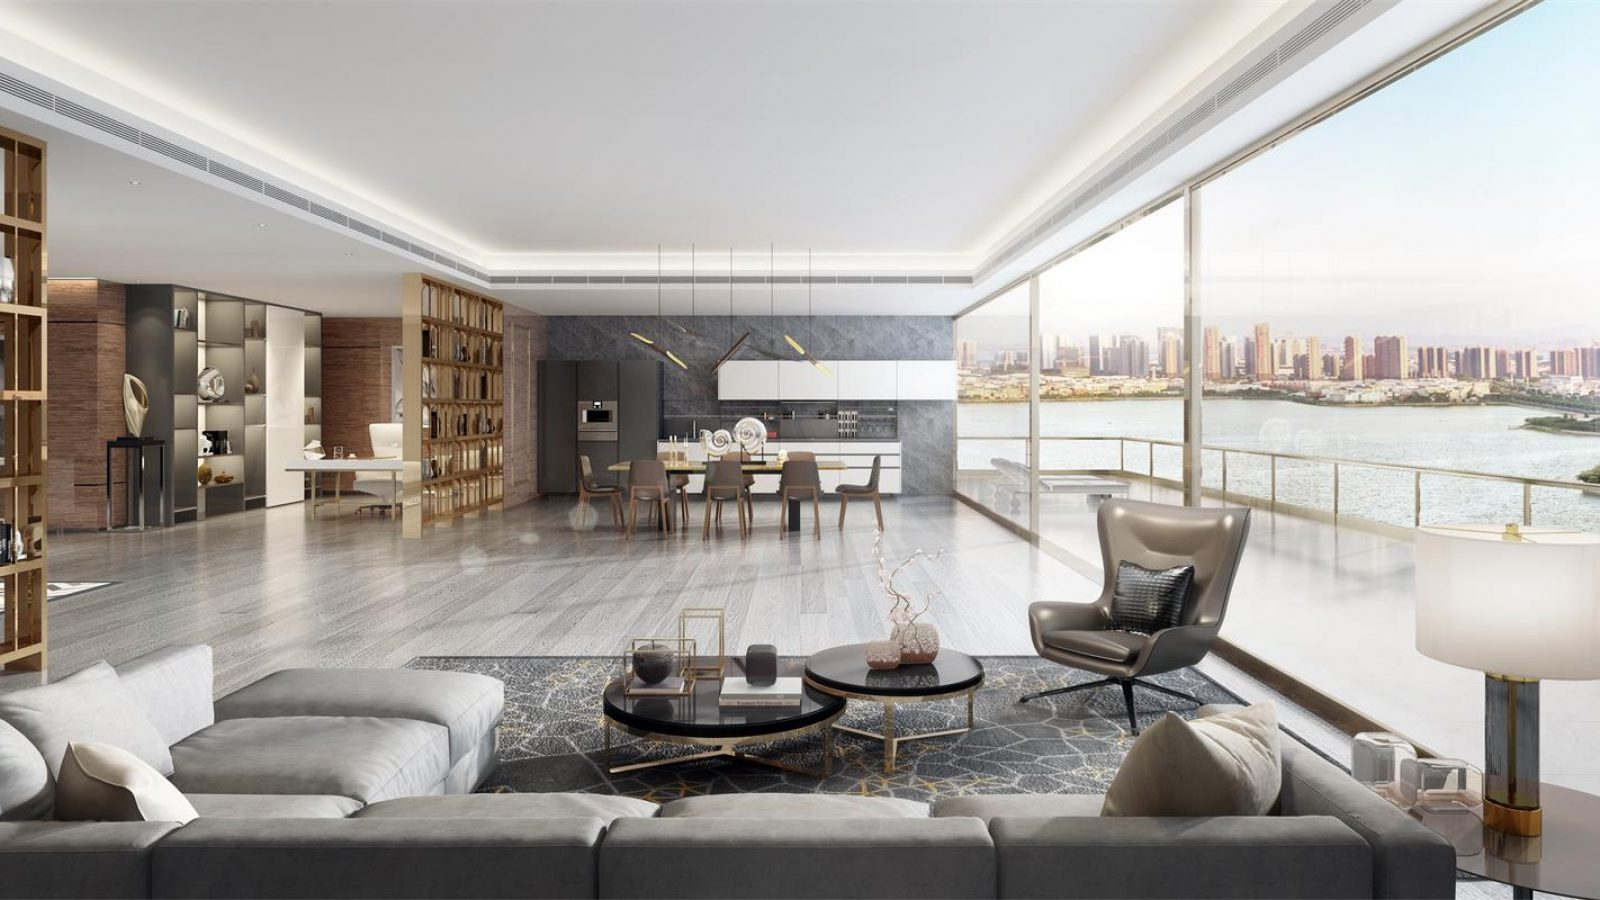 Architectural_Visualization_3D_Rendering_AIMIRCG.COM_101057